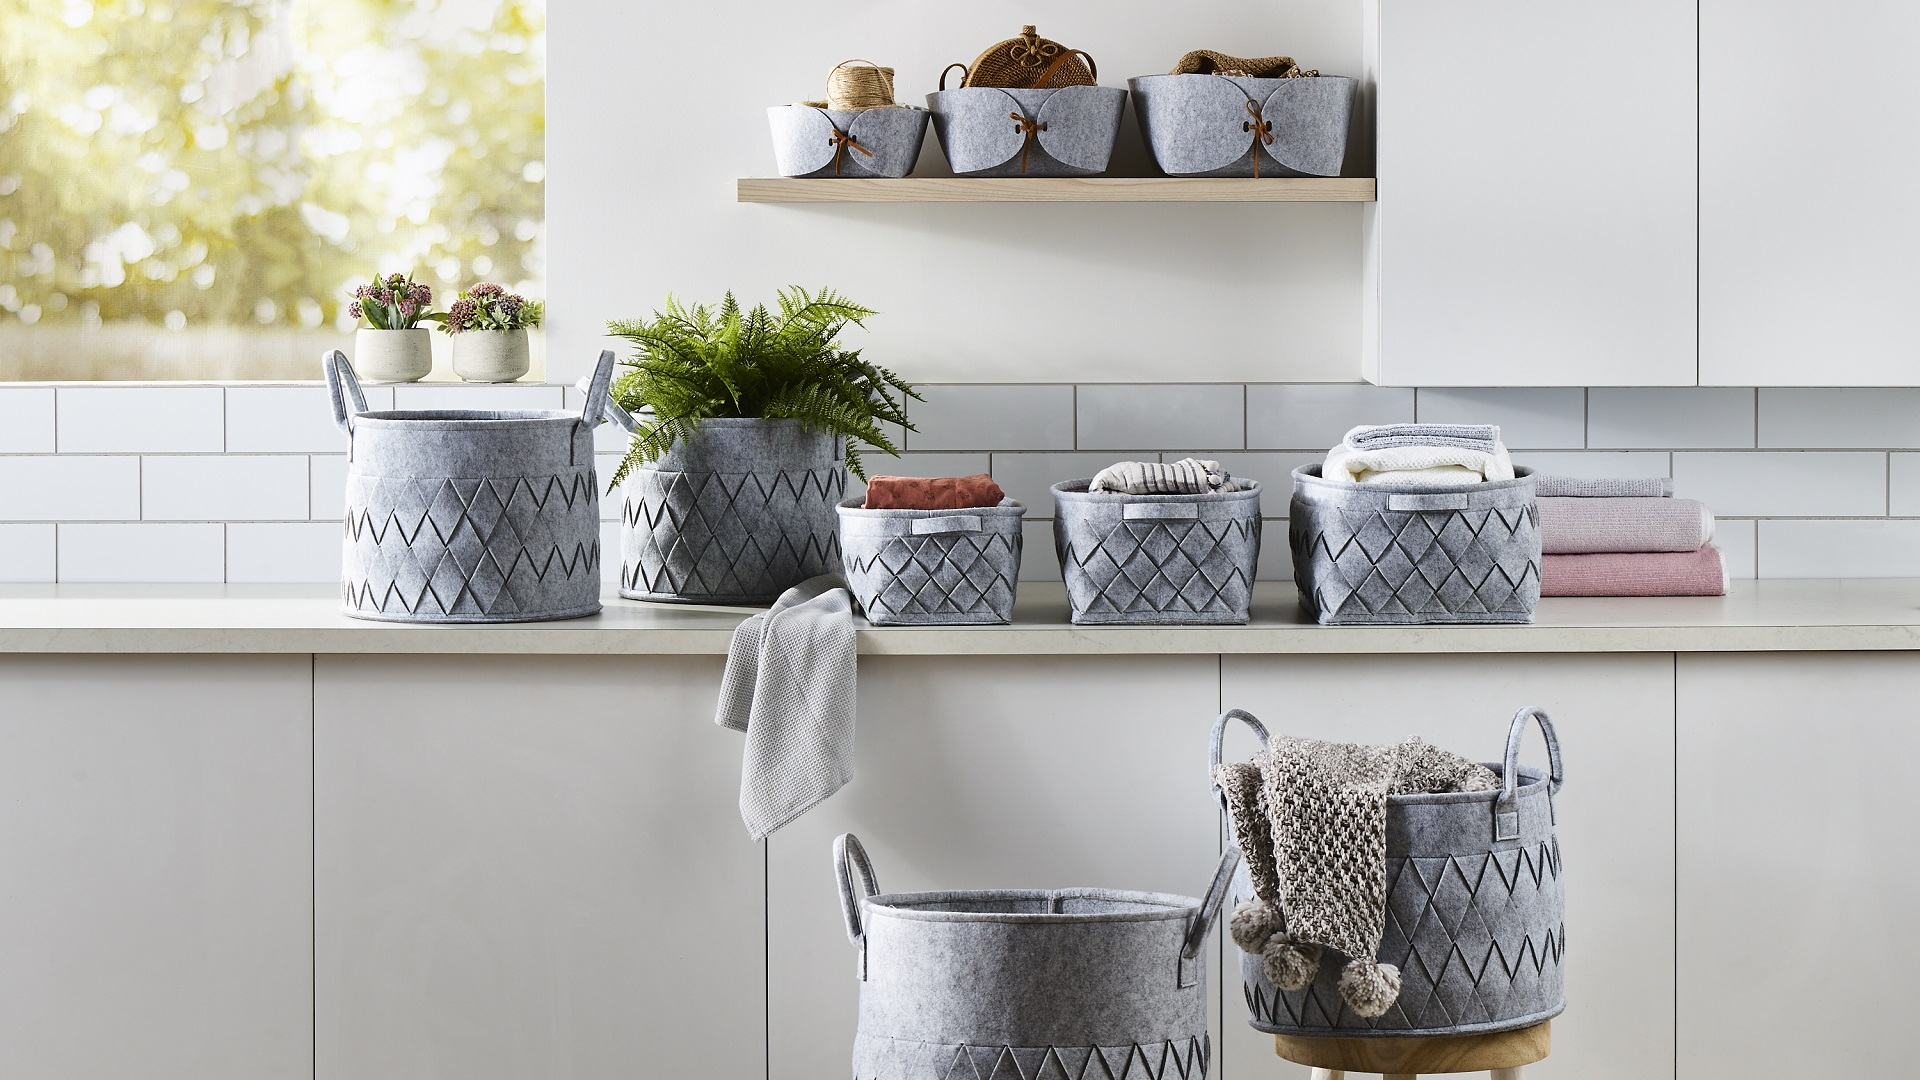 Choose The Right Laundry Baskets & Bins For Your Home